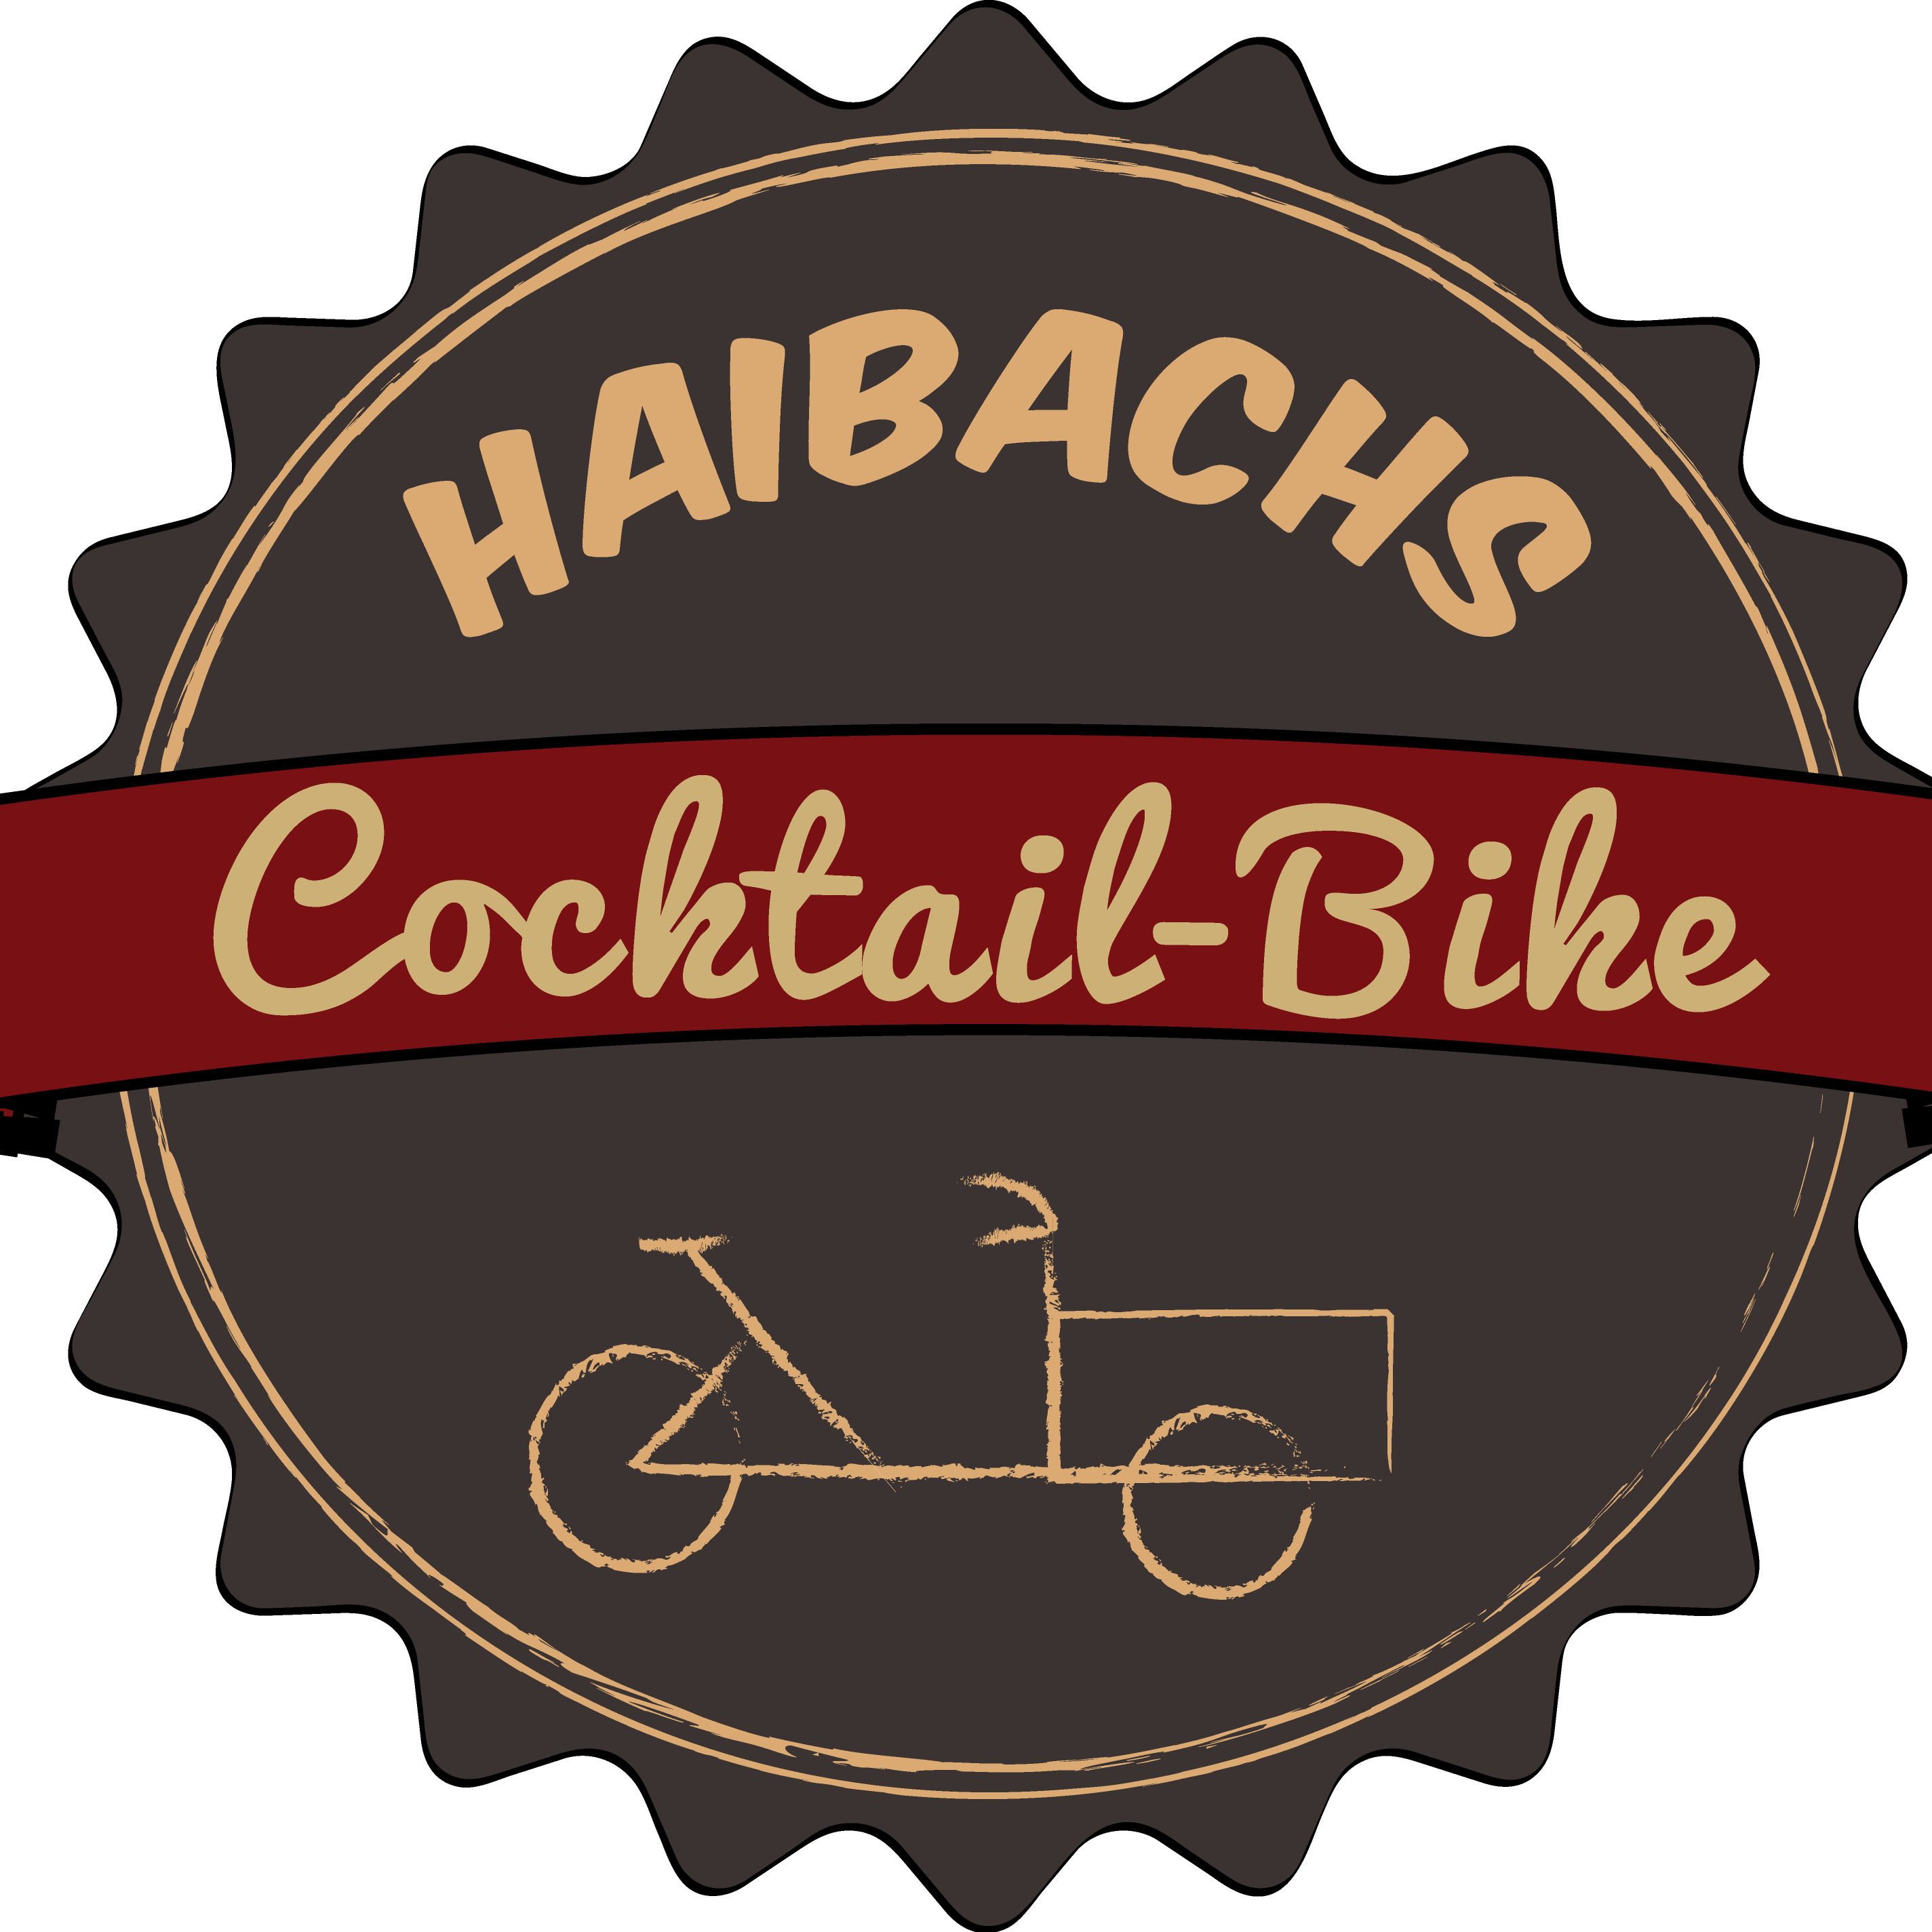 Haibachs Cocktail-Bike